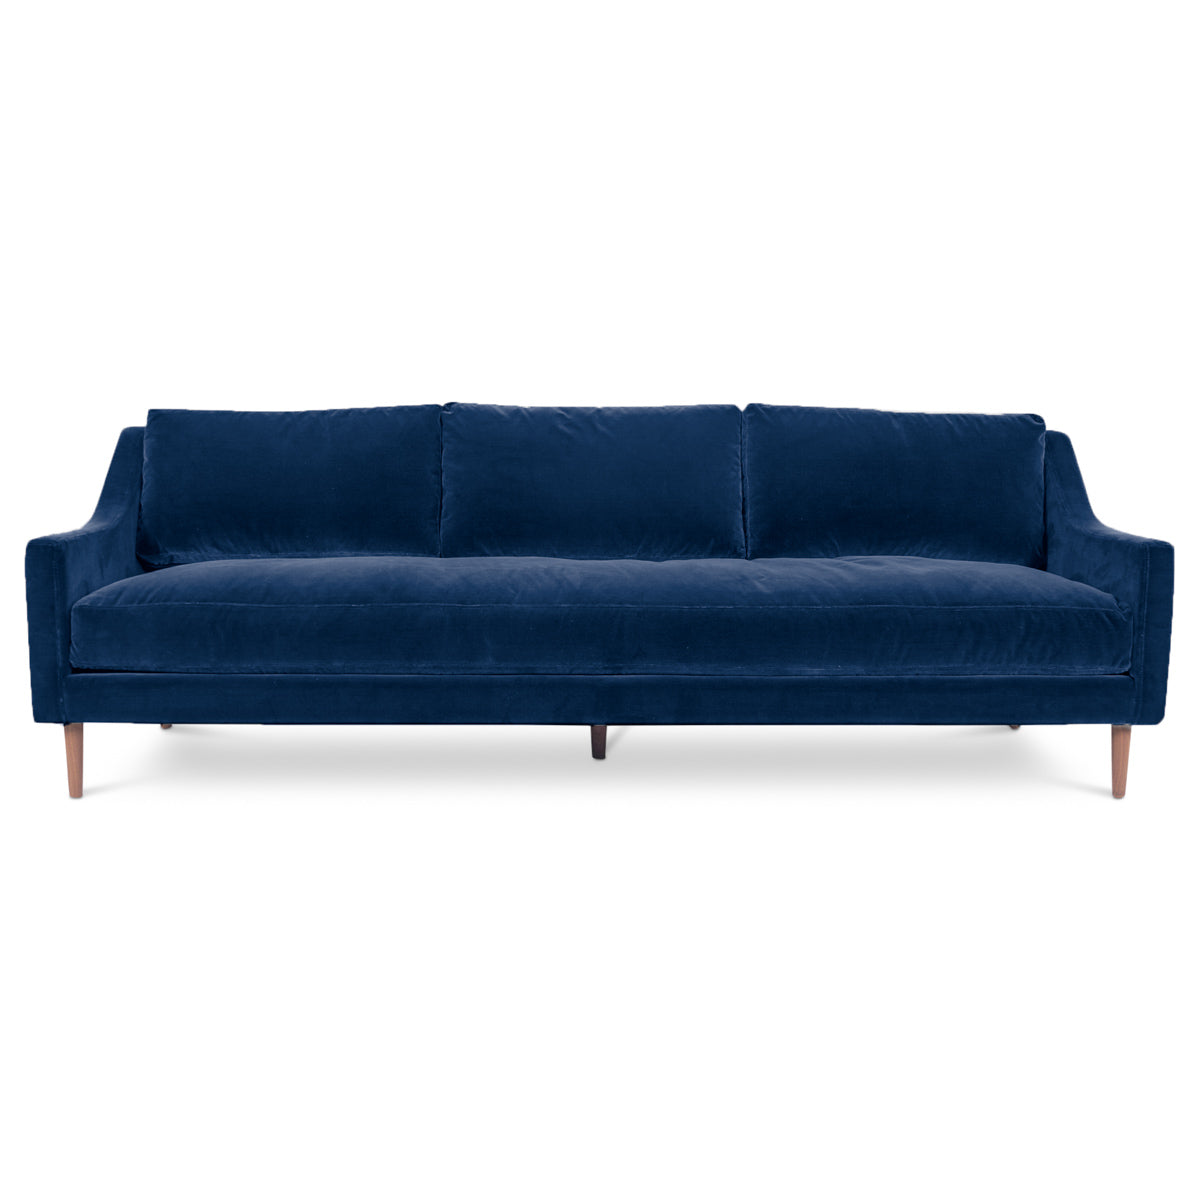 Naples Sofa in Velvet - ModShop1.com